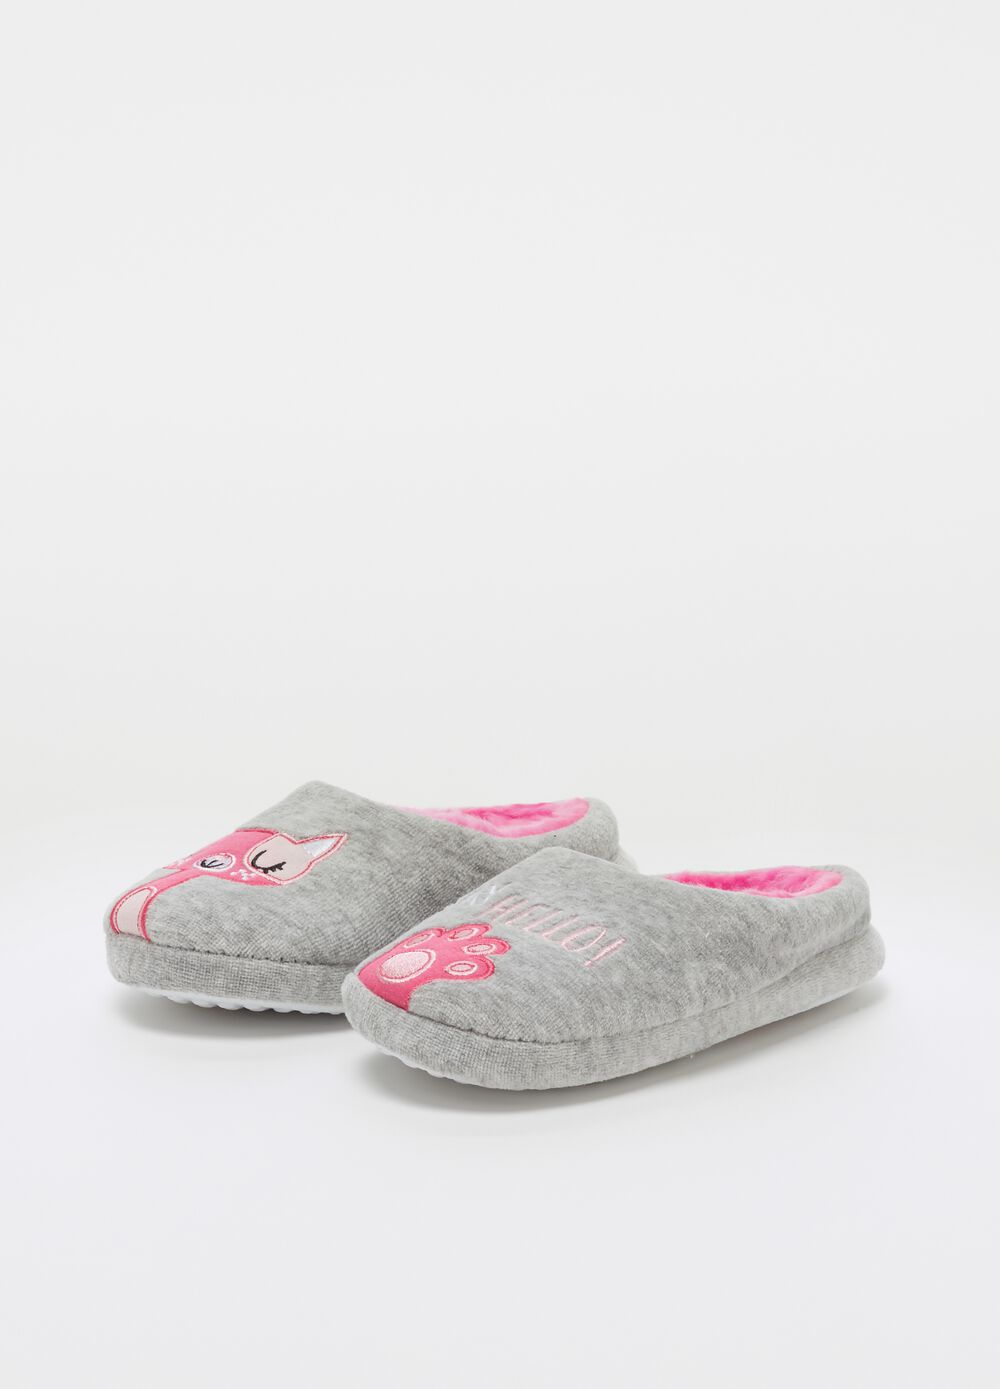 Mélange fabric slippers with embroidery